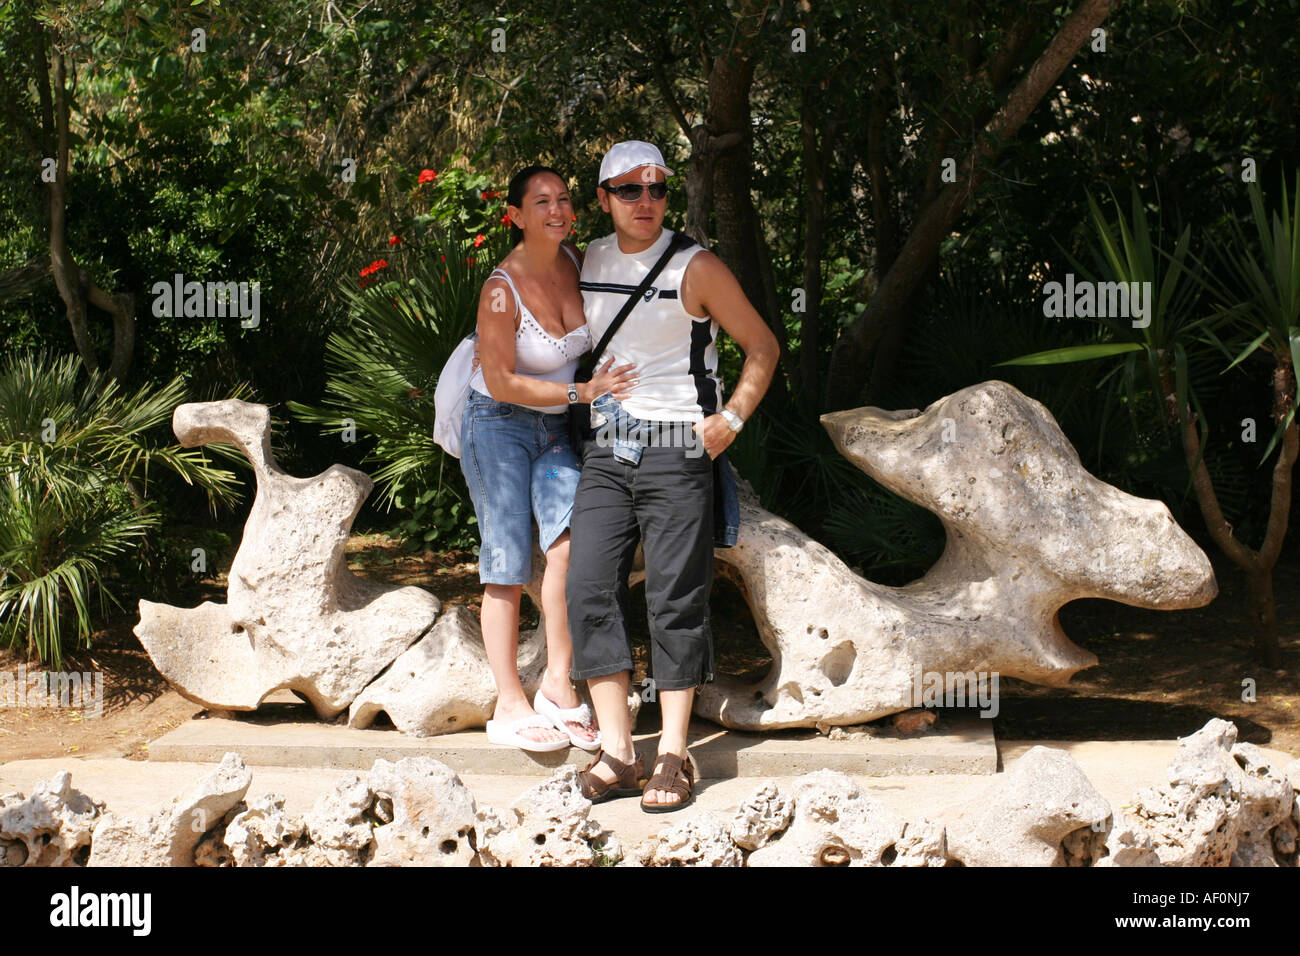 Tourists by the dragon stone that is the symbol of cuevas del tourists by the dragon stone that is the symbol of cuevas del drach or coves del drac the caves of the dragon mallorca spain biocorpaavc Image collections